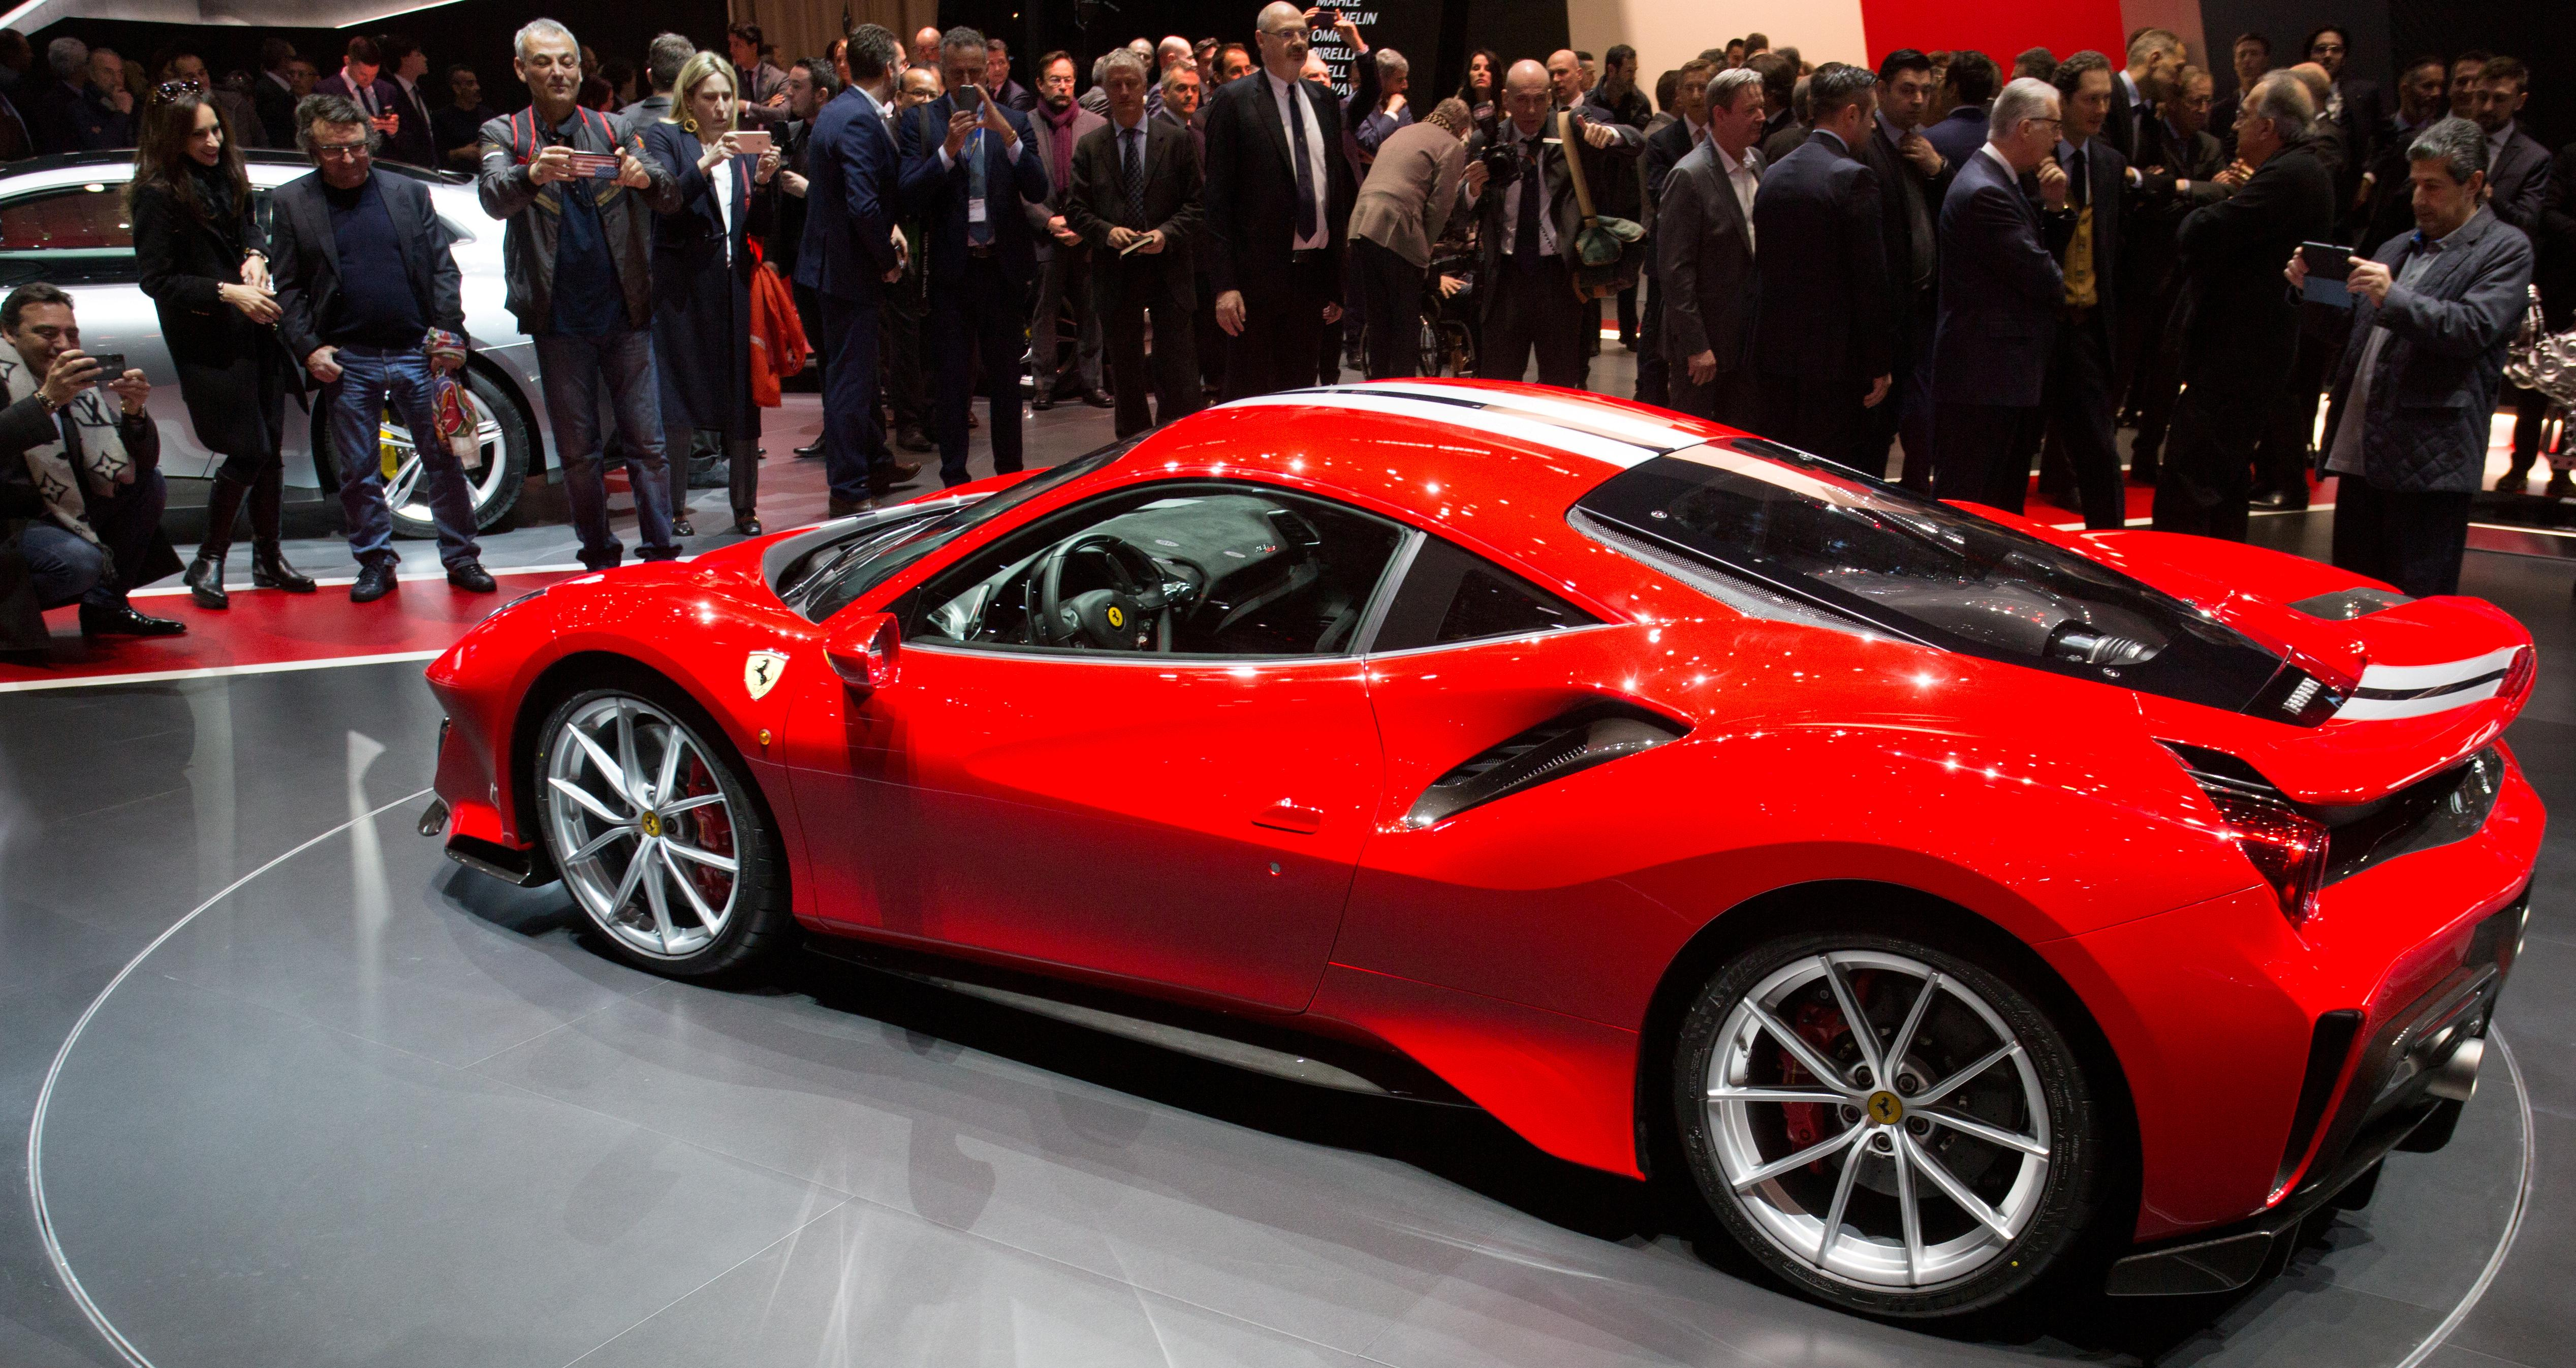 Ferrari shares fall after it fails to upgrade guidance despite earnings rise